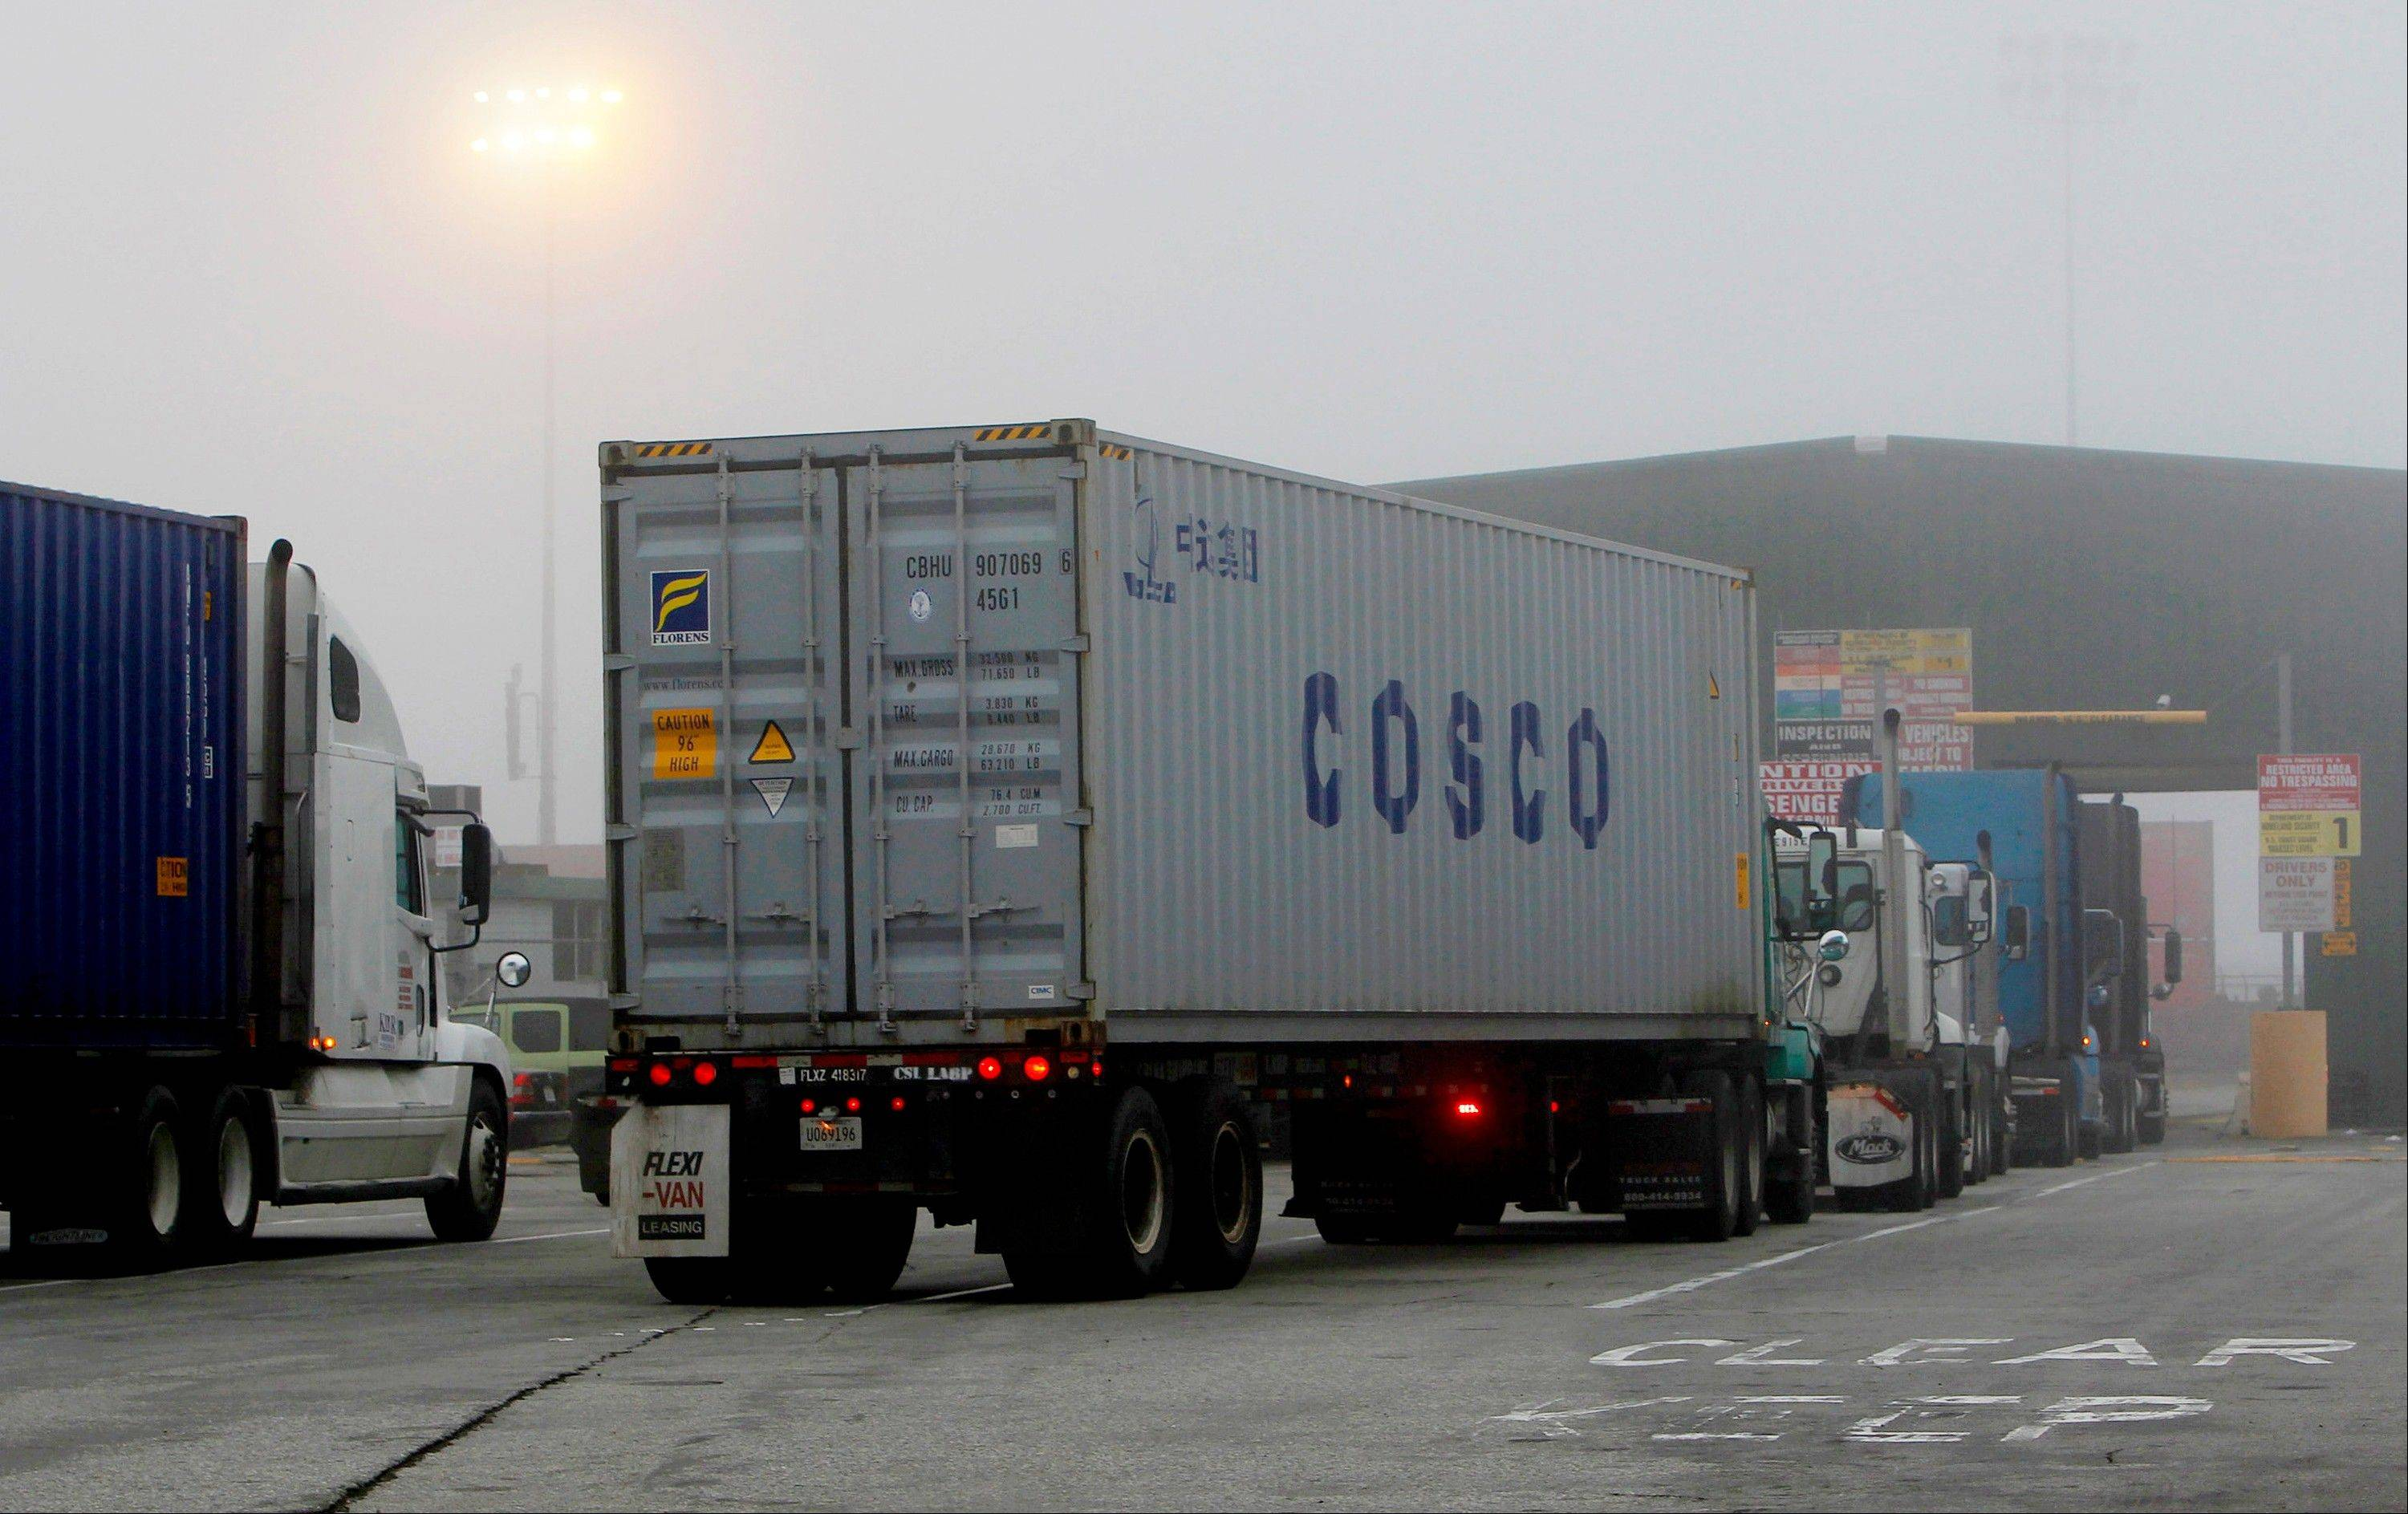 Cargo trucks line up in the dense fog to enter the Port of Long Beach Wednesday December 5, 2012. Work resumed Wednesday at the Los Angeles and Long Beach harbors after settlement of a strike that crippled the nation's busiest container port complex for more than a week.